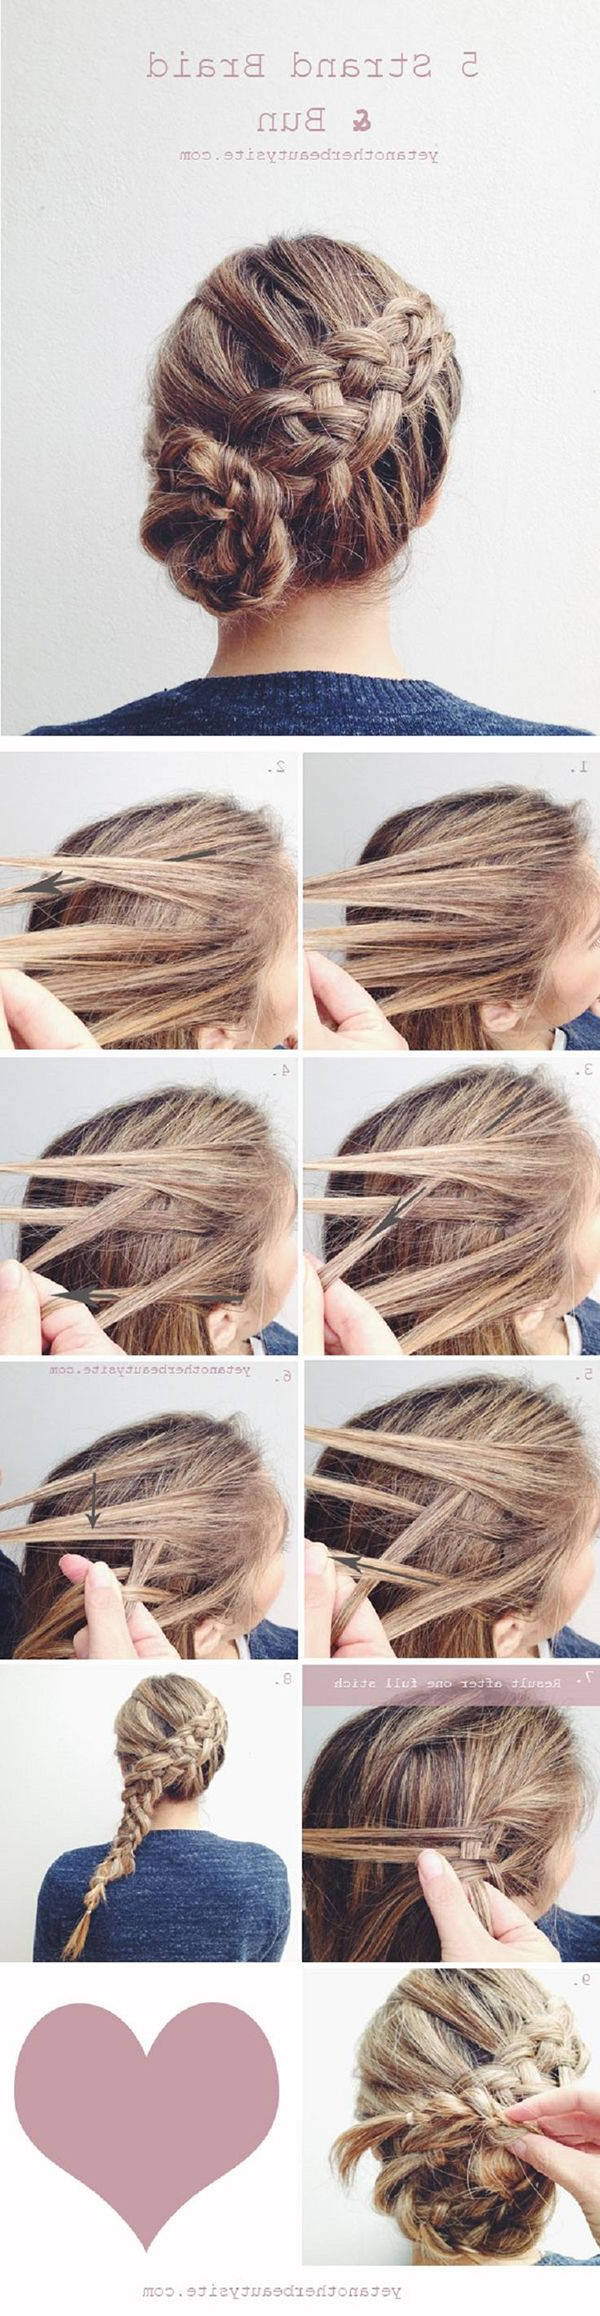 Trendy Diagonal Braid And Loose Bun Hairstyles For Prom Throughout Braids And Buns Are Two Hairstyles That, On Their Own, Will Probably (View 18 of 20)